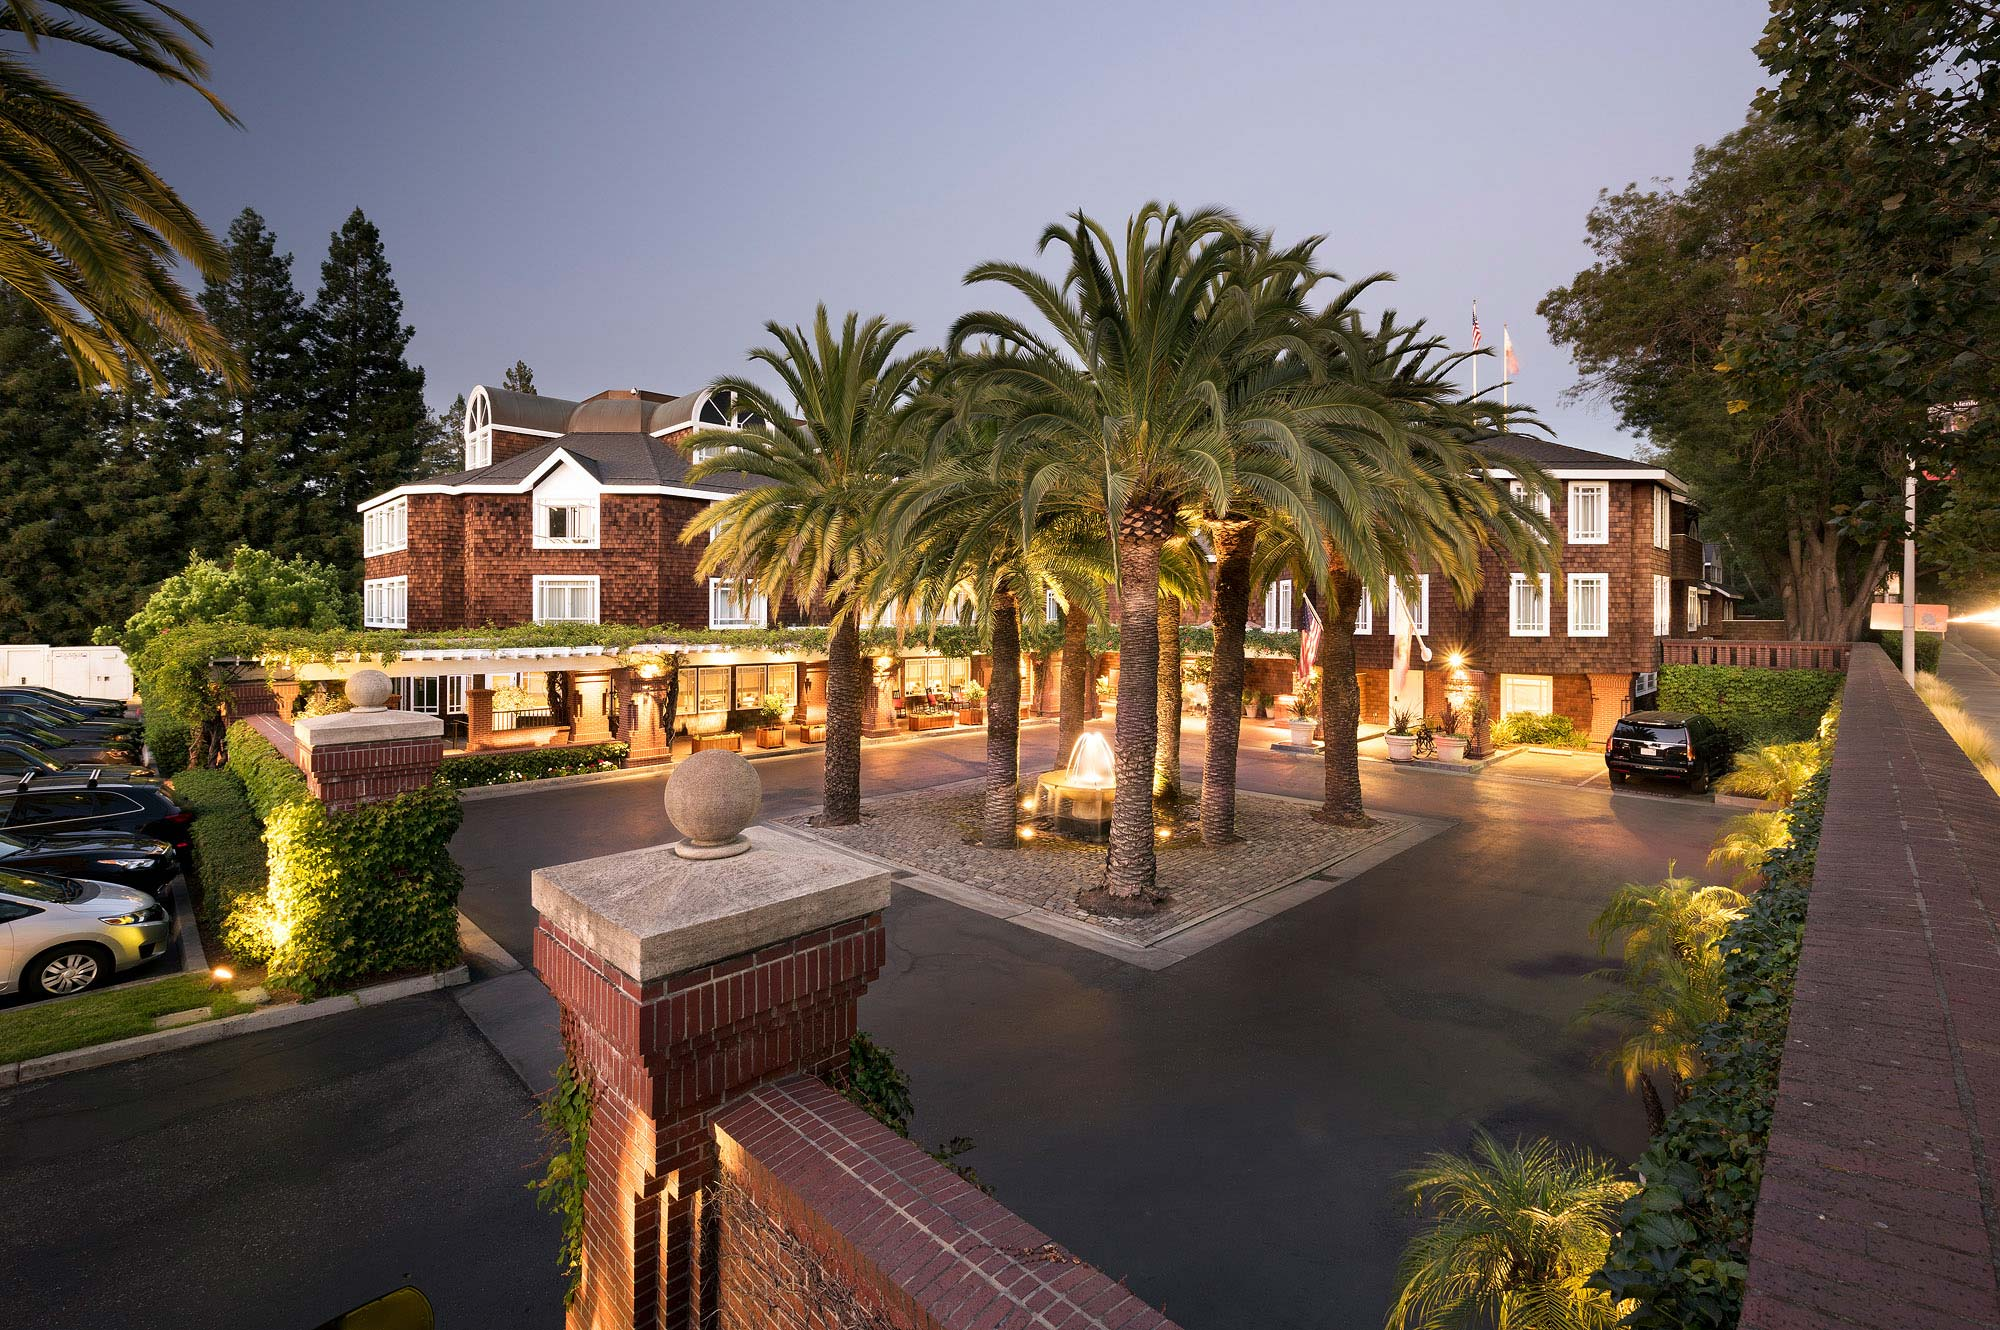 Stanford Park Hotel in Stanford California